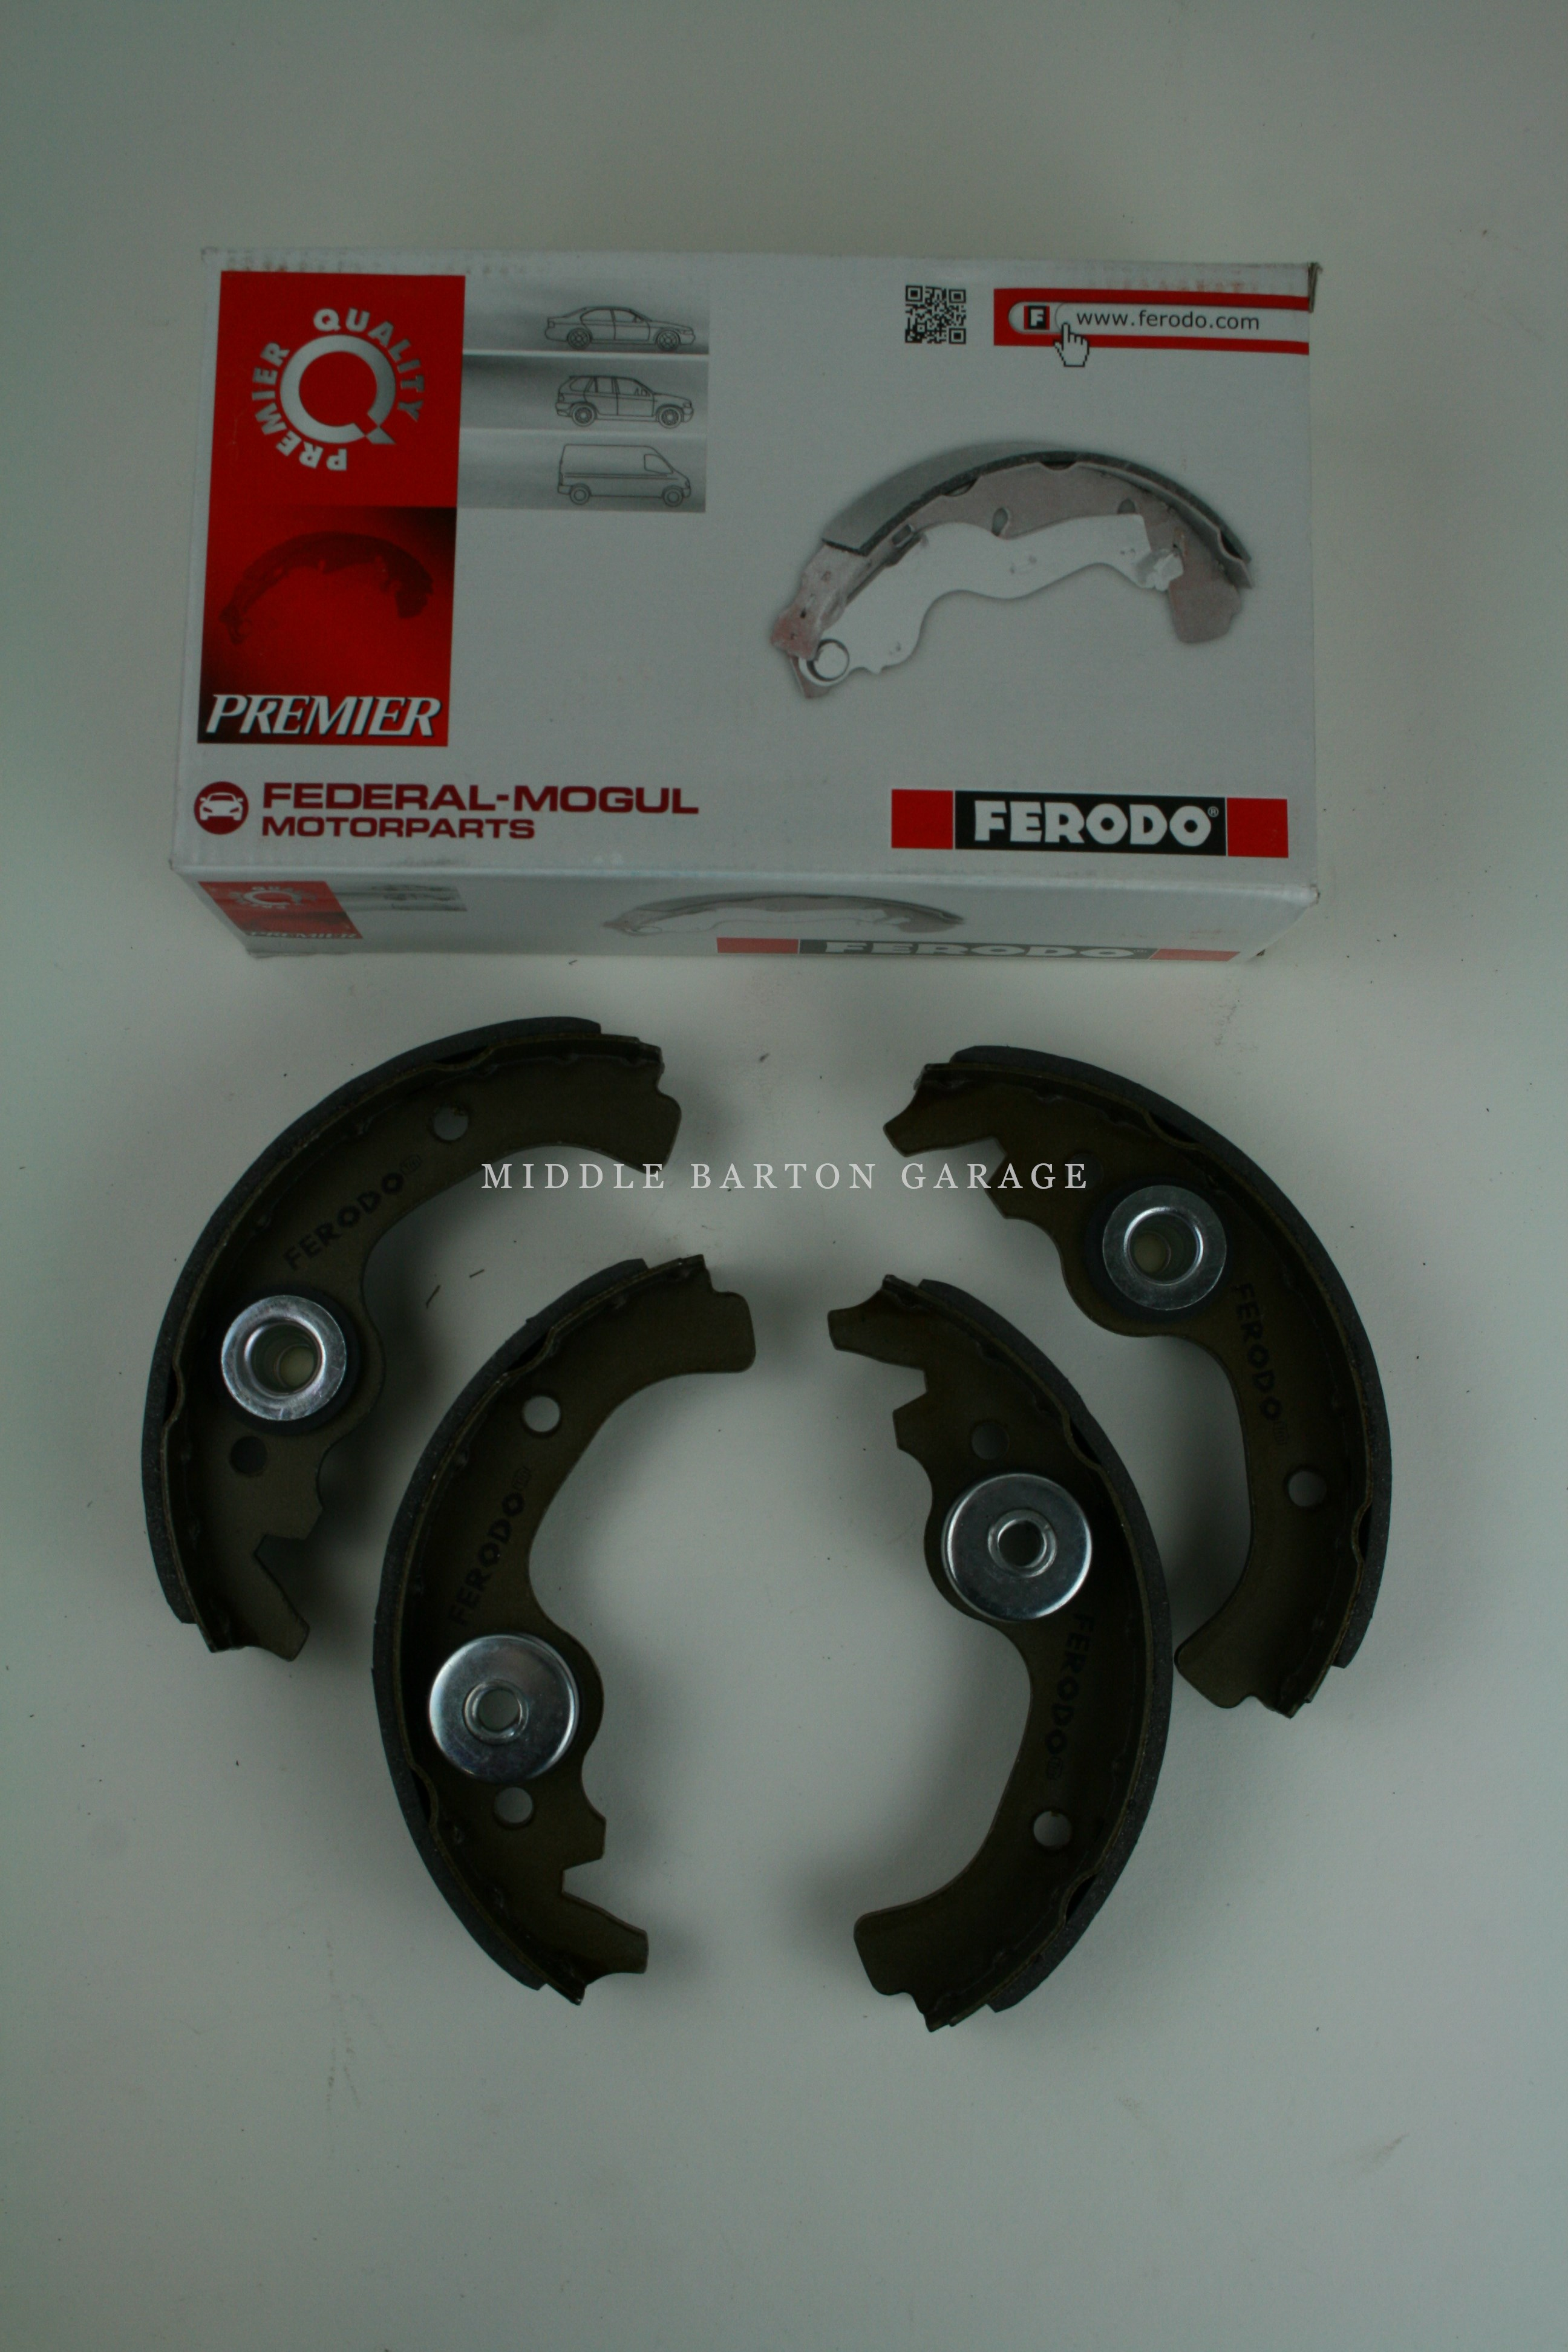 FERODO BRAKE SHOES 500F / 126 (Set of 4)